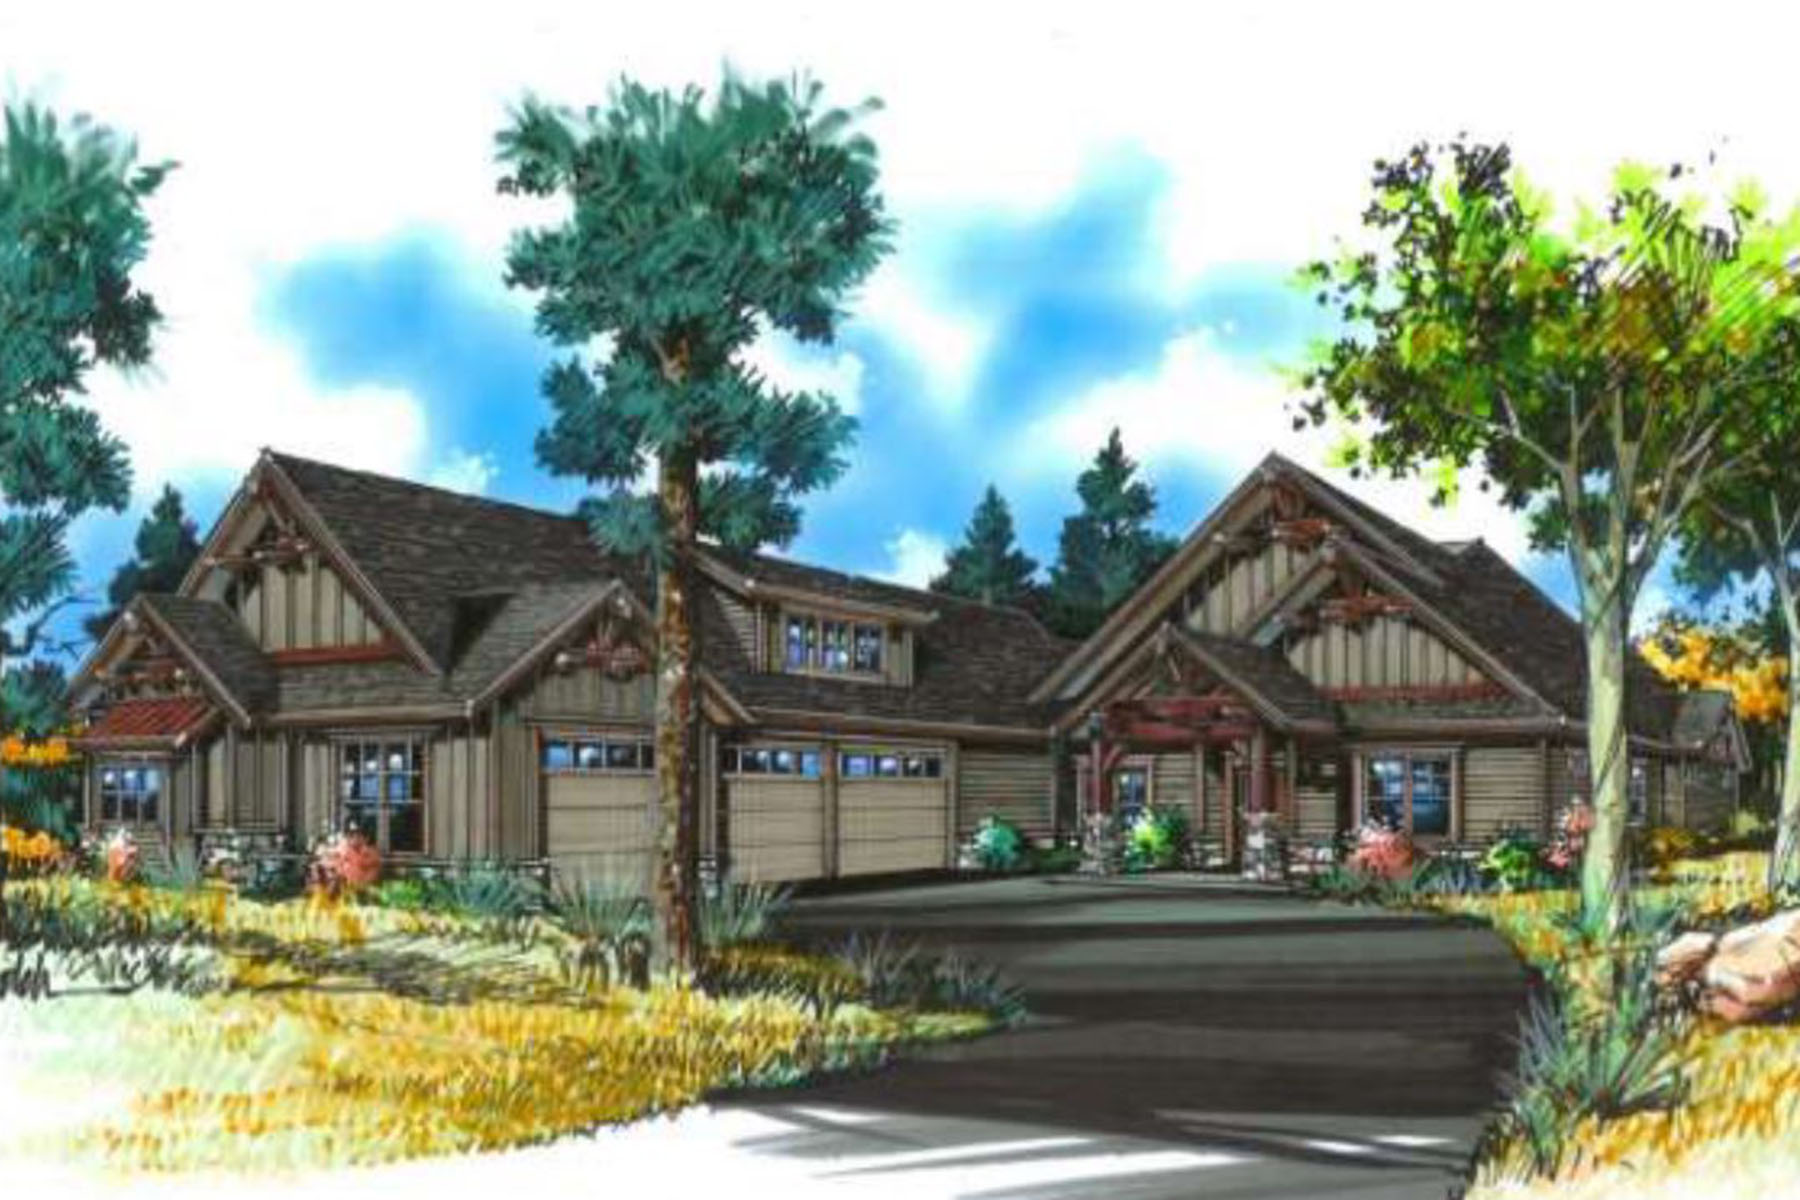 Single Family Home for Sale at Mountain Views Rustic Craftsman 7170 W Chardonnay Ln Coeur D Alene, Idaho, 83814 United States